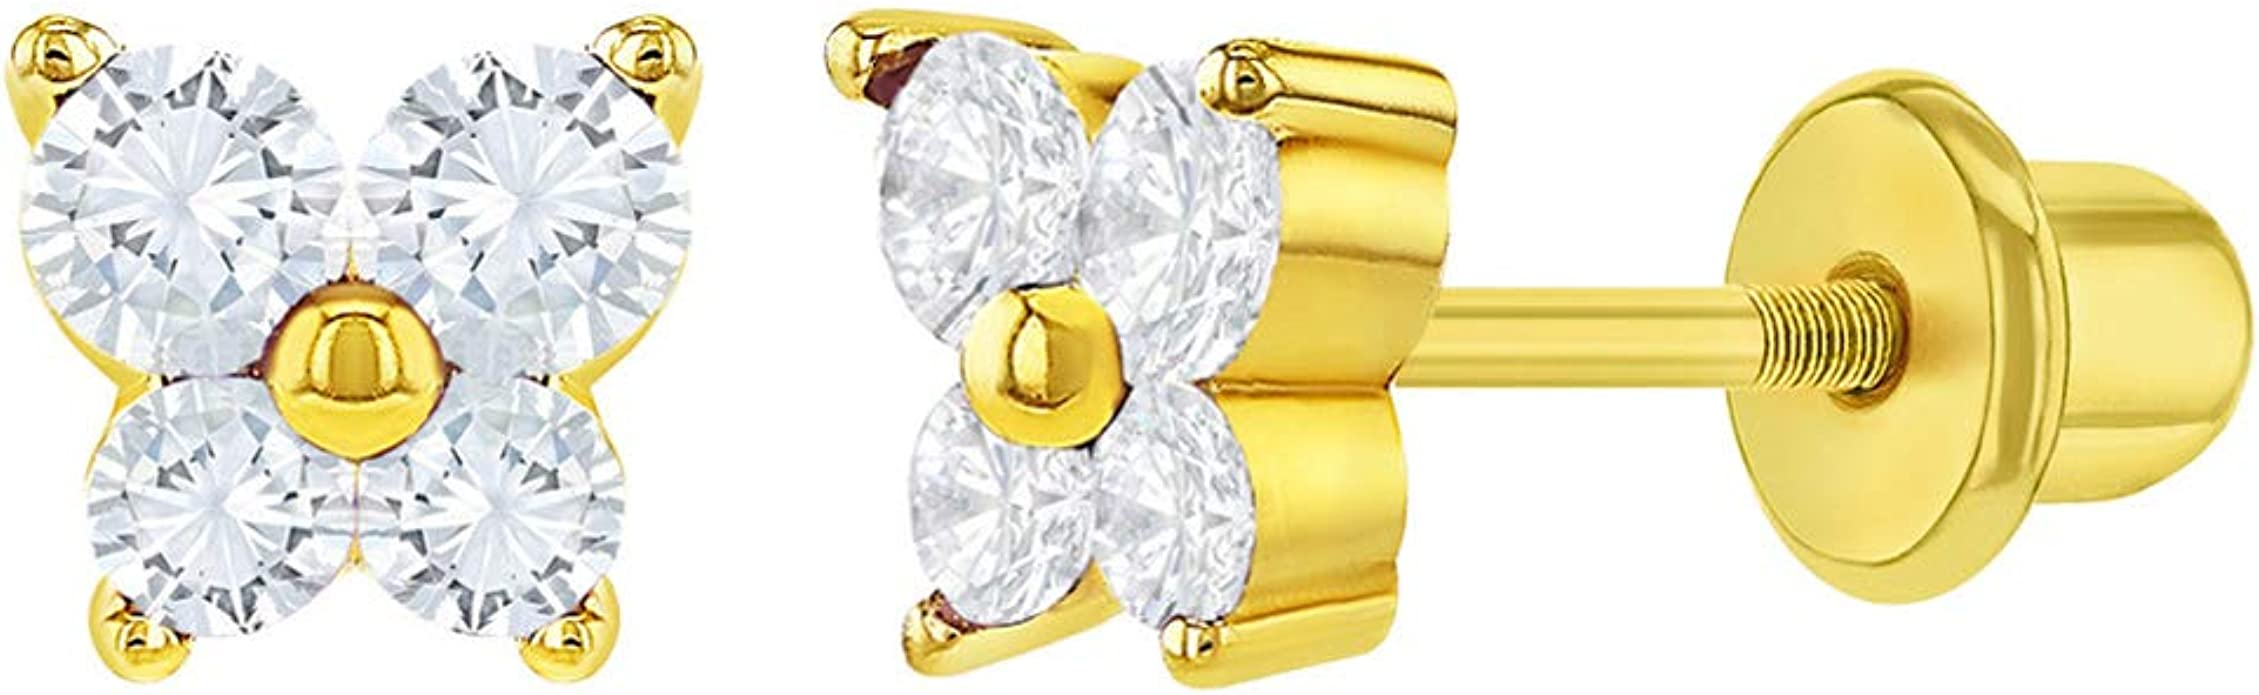 Star Shaped 18k Solid Gold Butterfly Backs Stud Earrings for Infants Toddlers